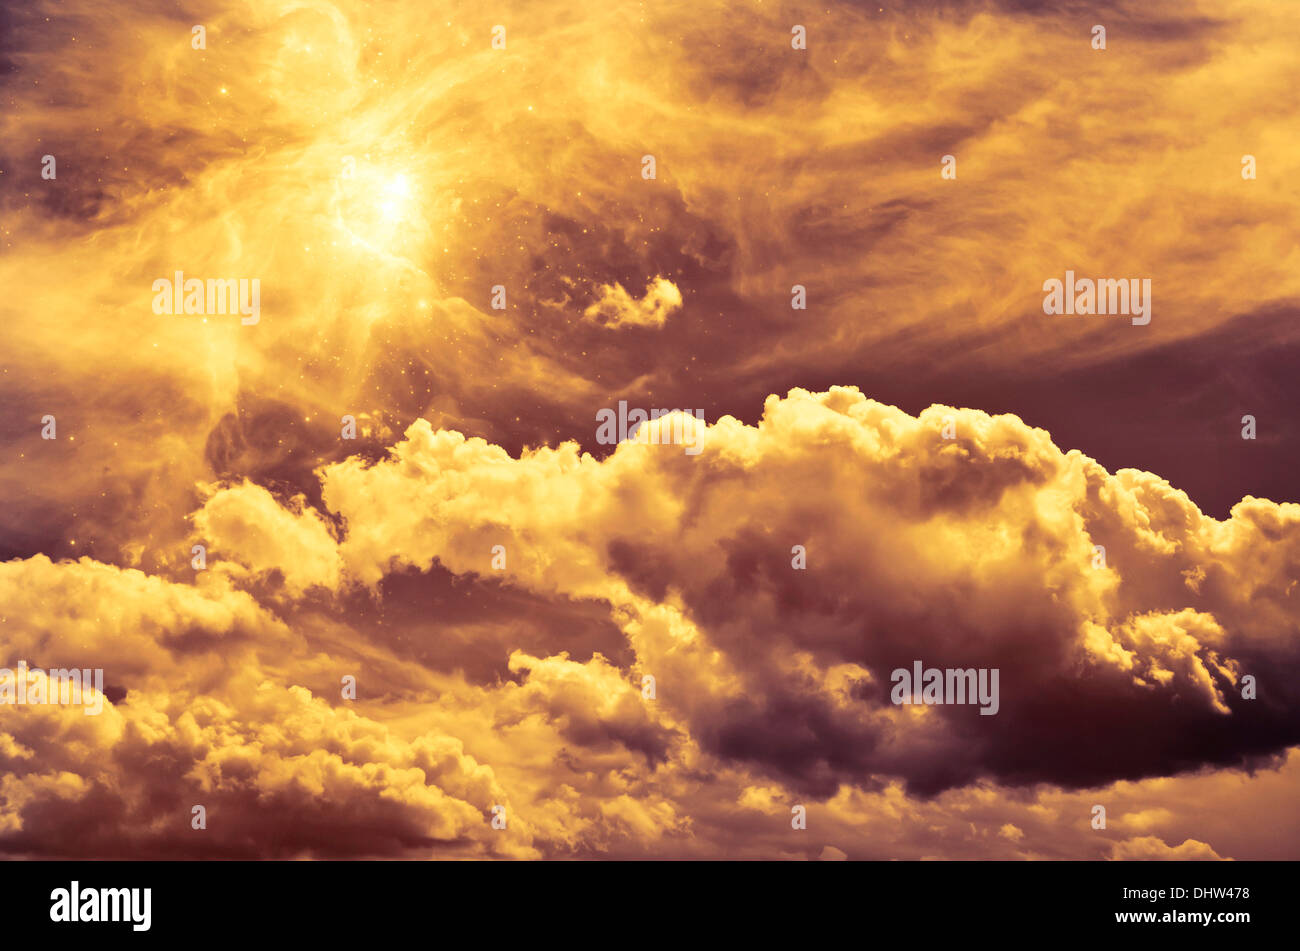 mystical sky with clouds - Stock Image